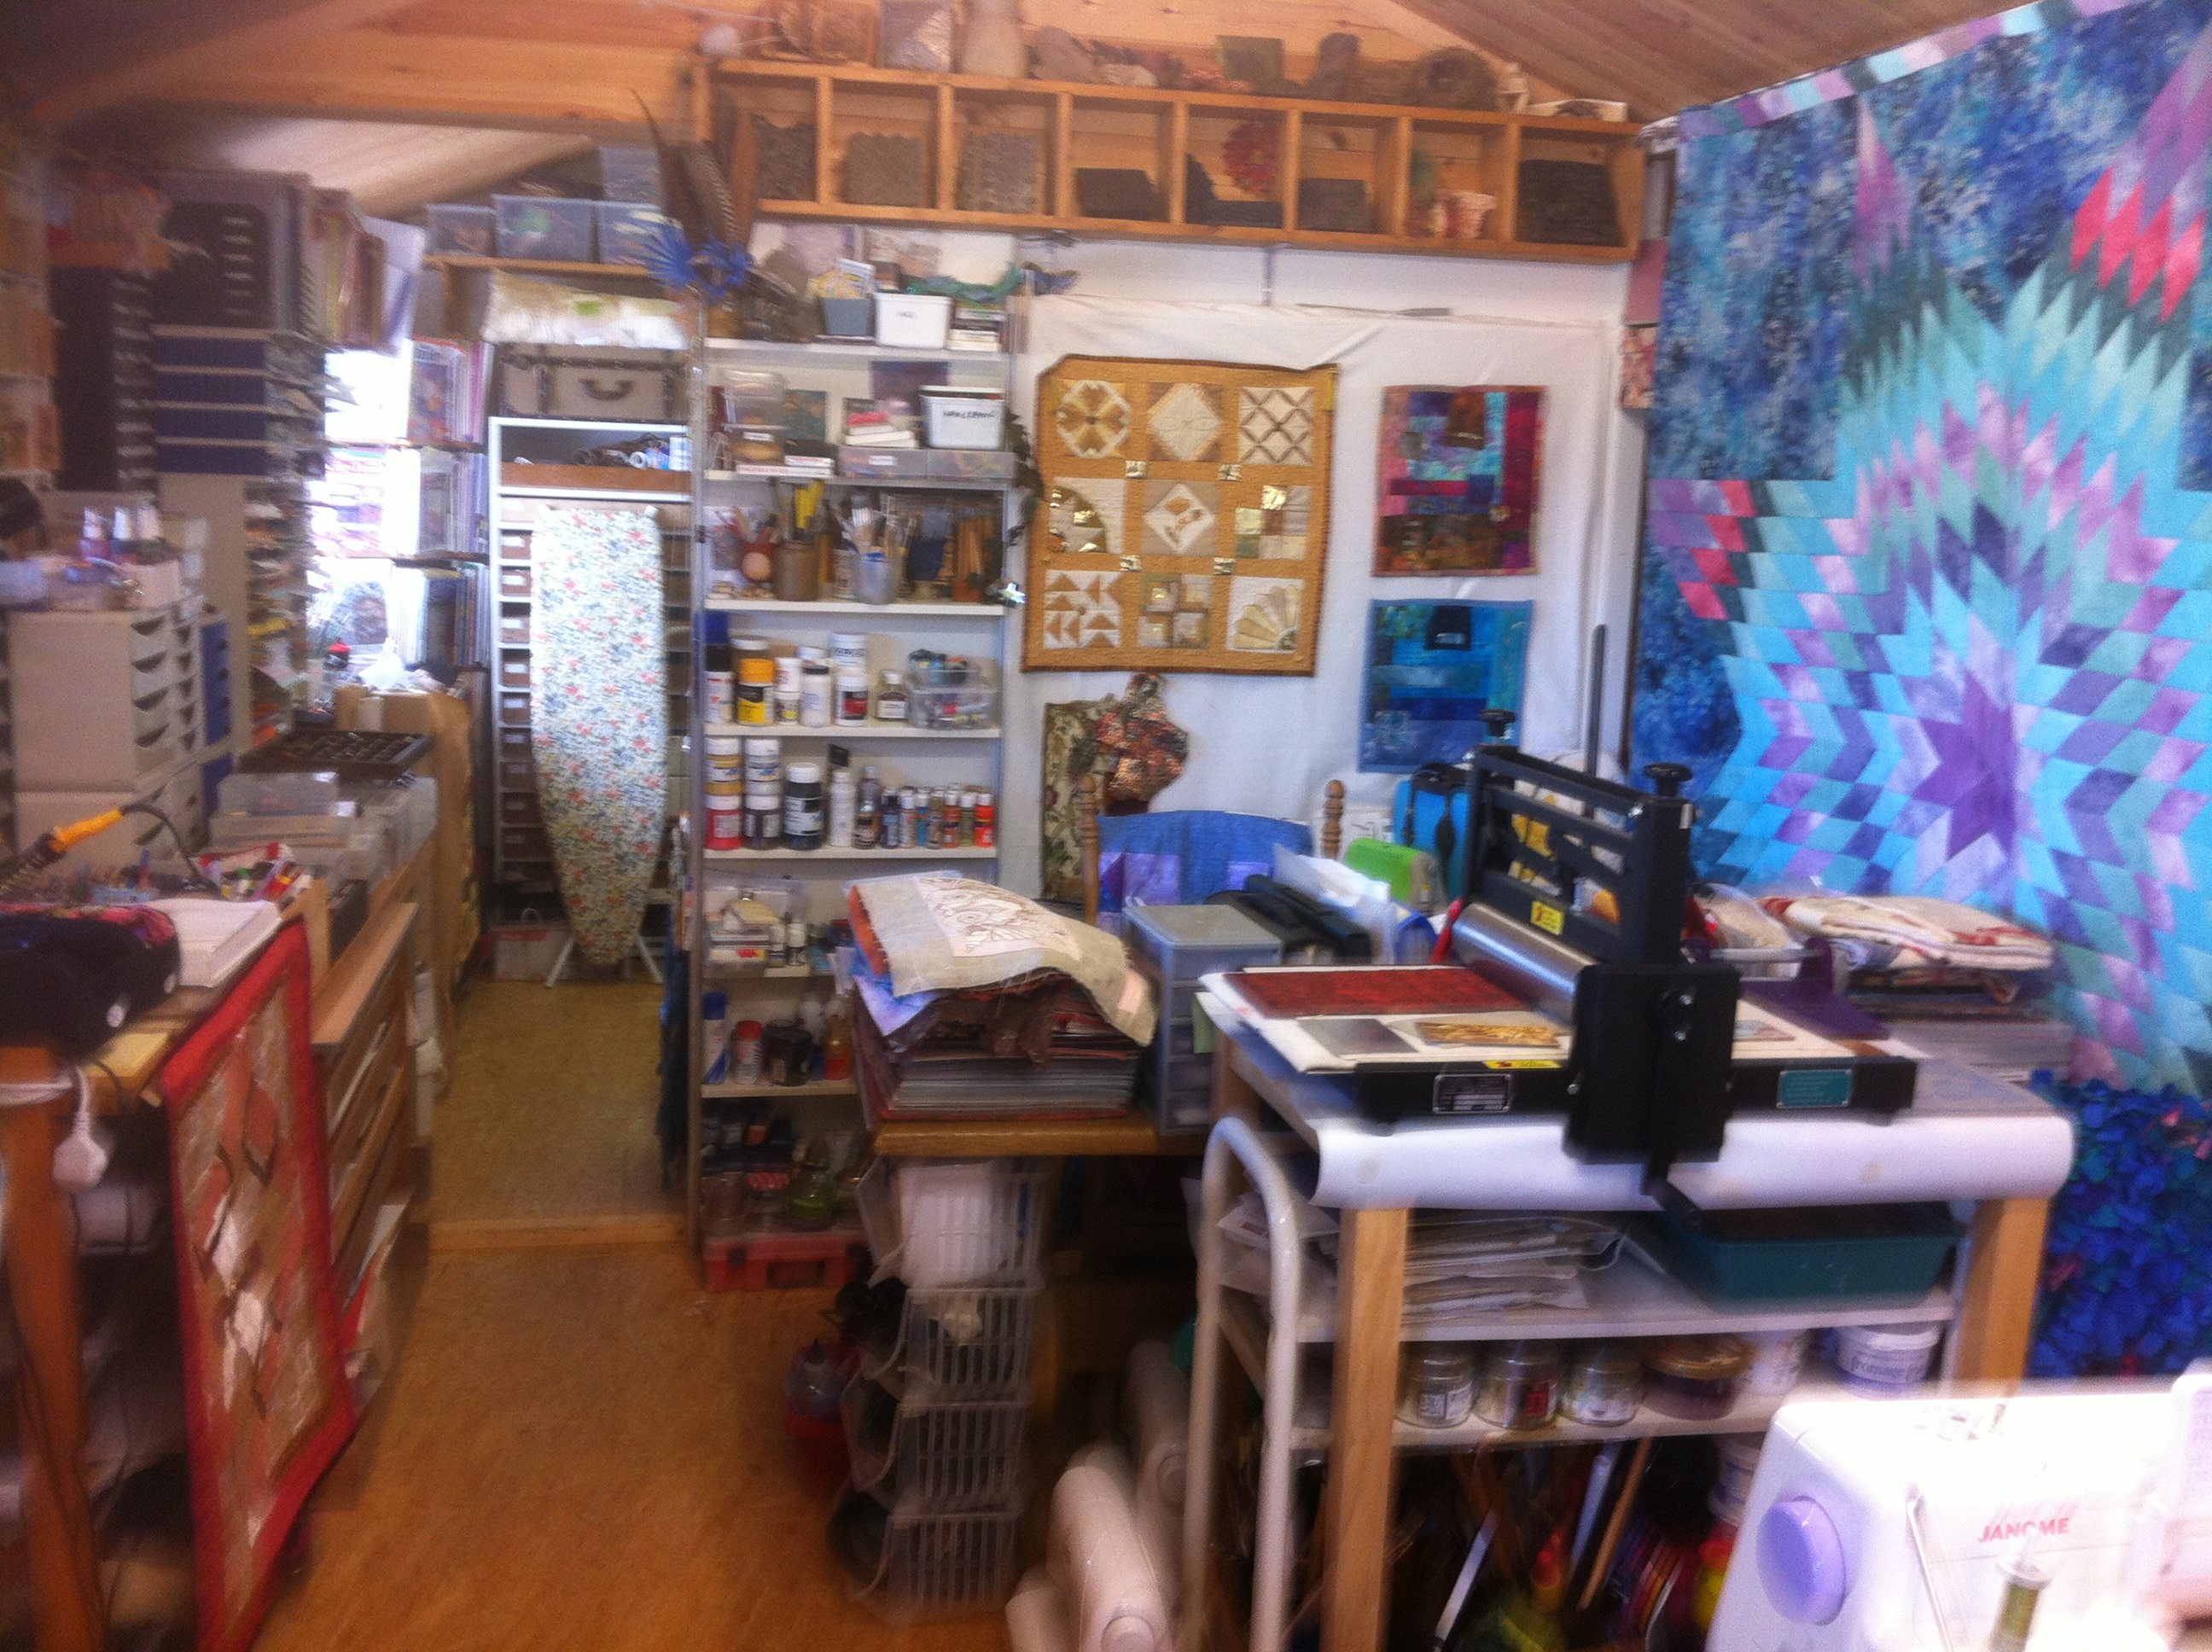 More of a view of left side of quilters cottage studioHome Art Studio Furniture Uk  Garden Studio  Vintage Industrial  . Artist Studio Furniture Uk. Home Design Ideas